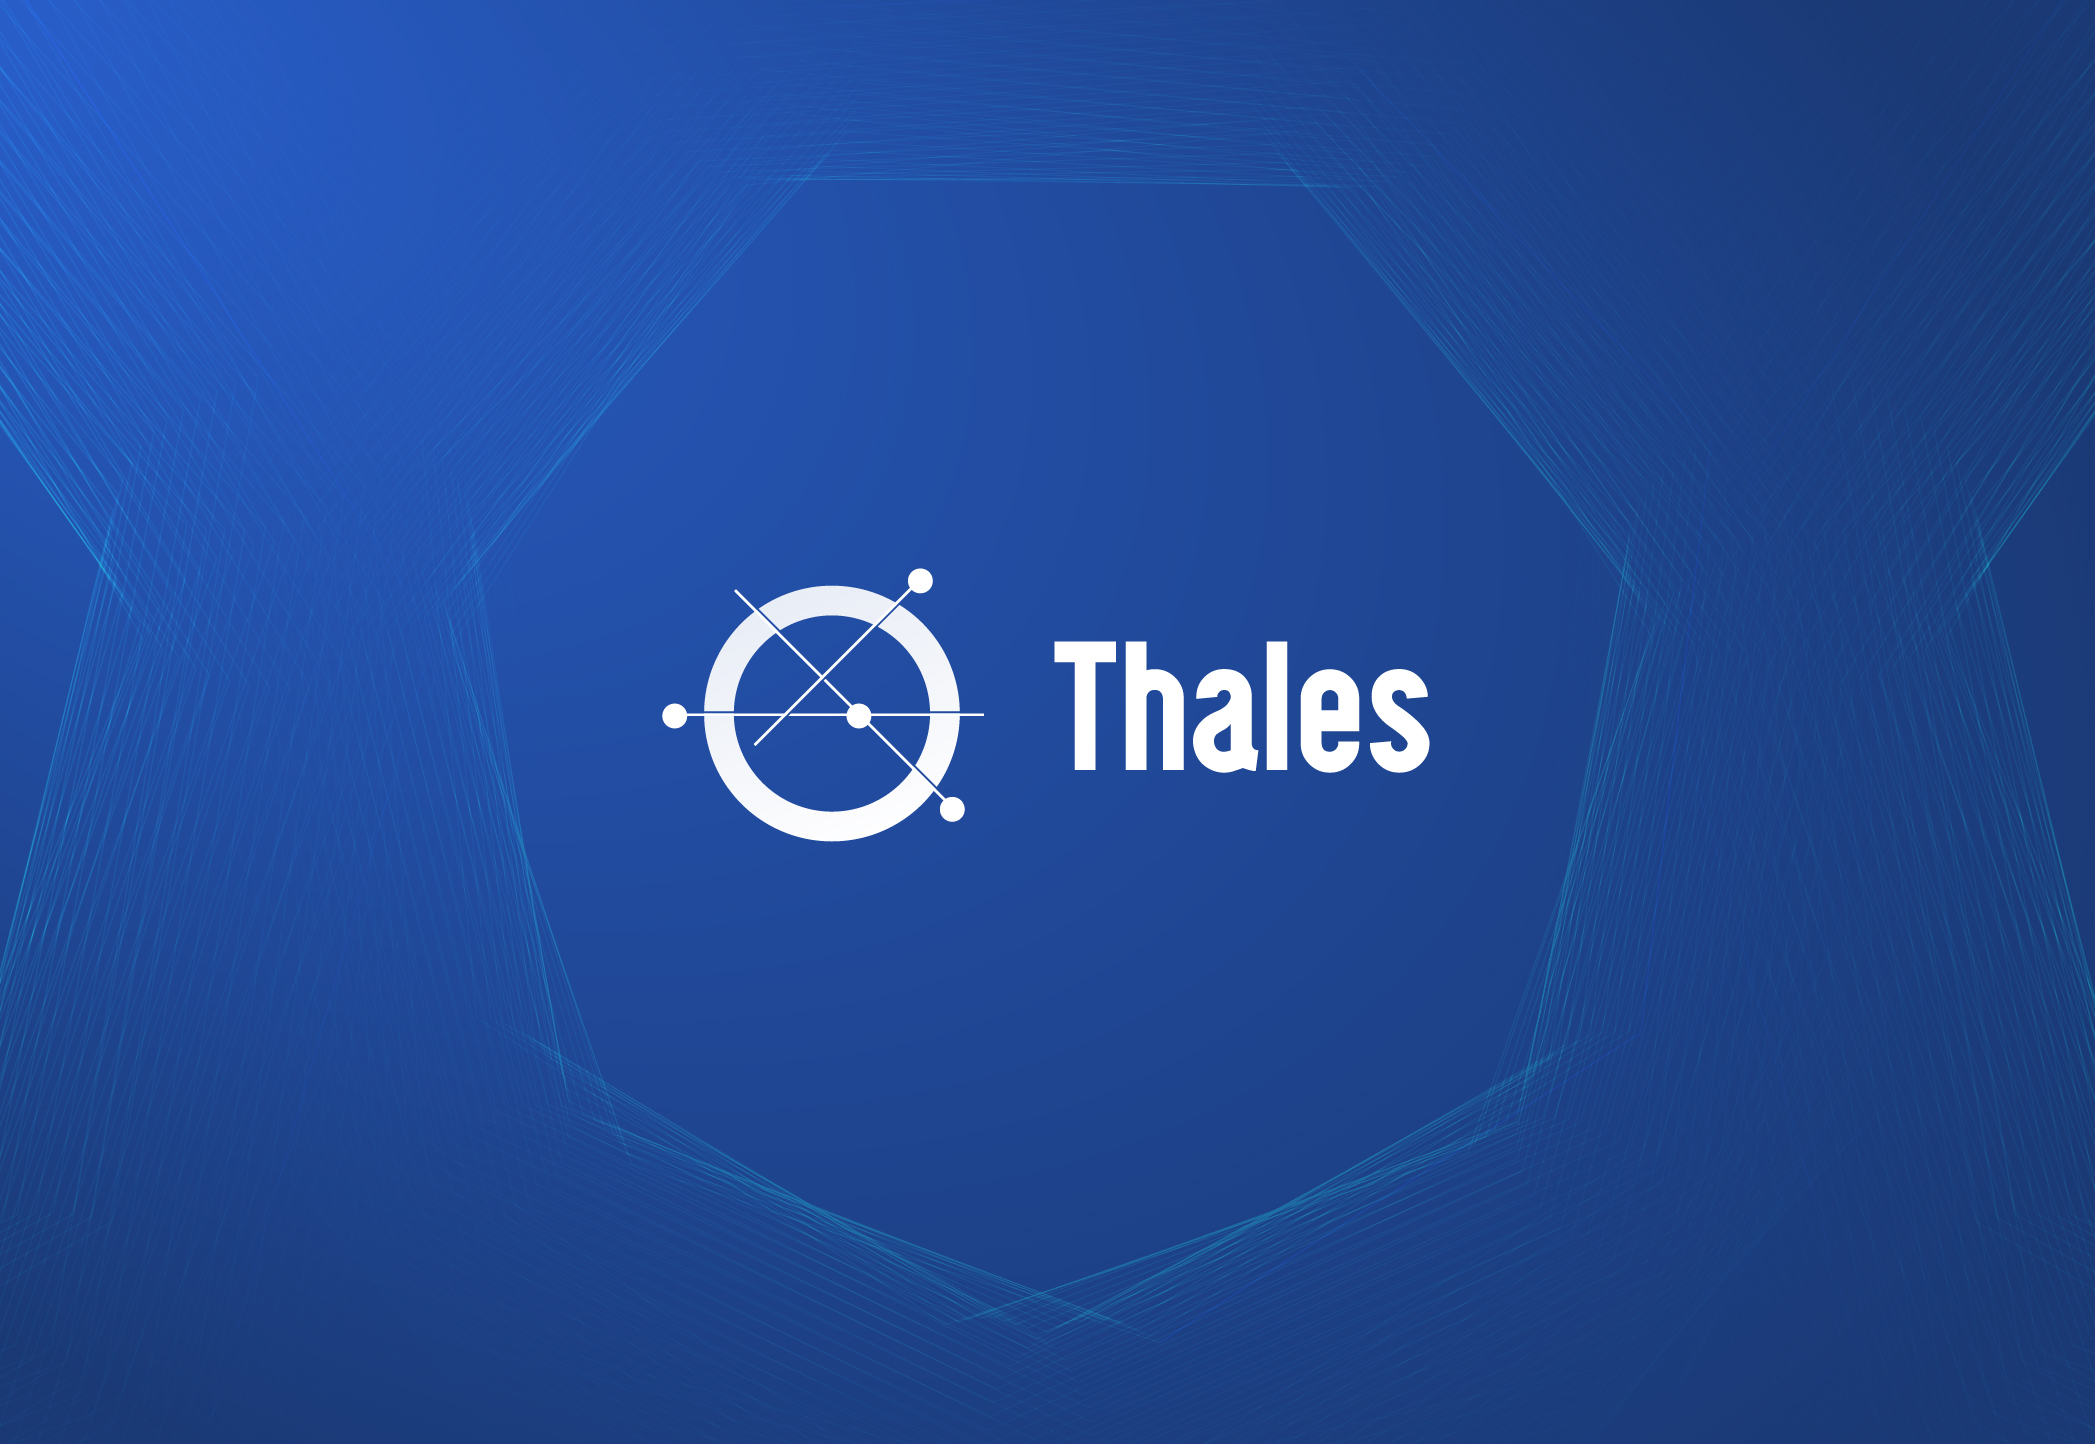 Thales: We're building a whole new economic system